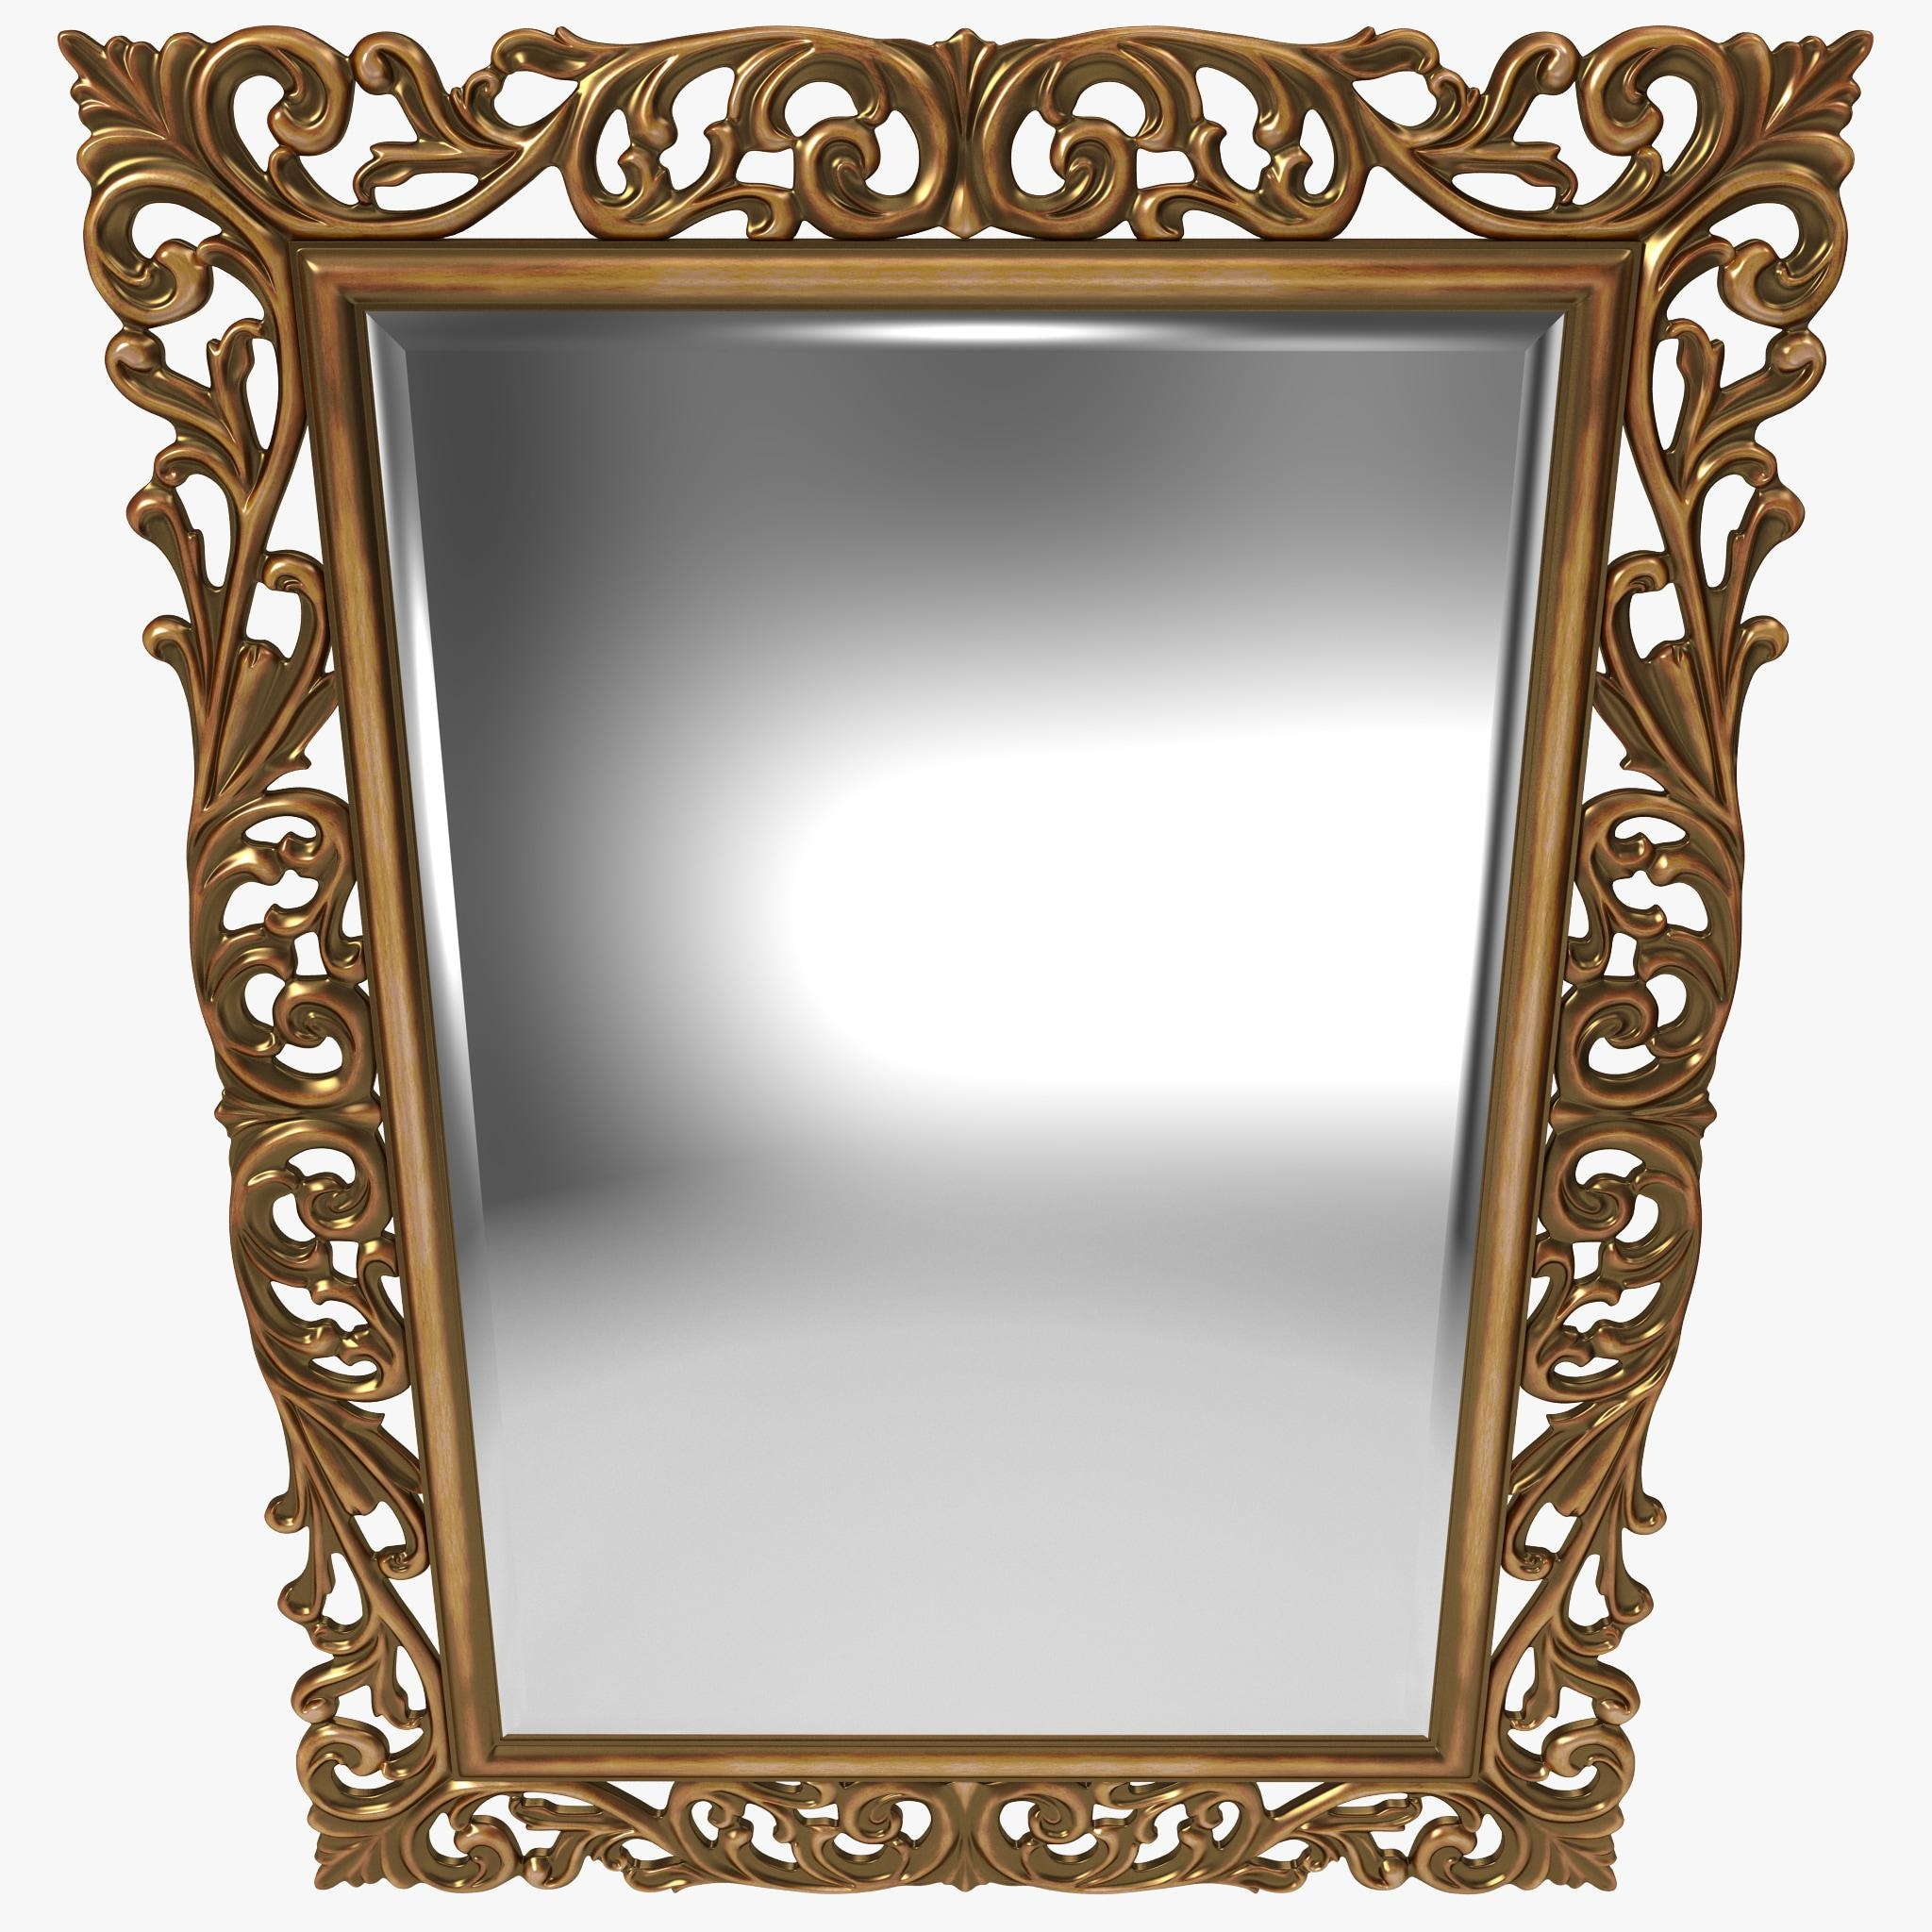 Mirror 3D Models | Turbosquid With Regard To Square Gold Mirror (Image 11 of 20)